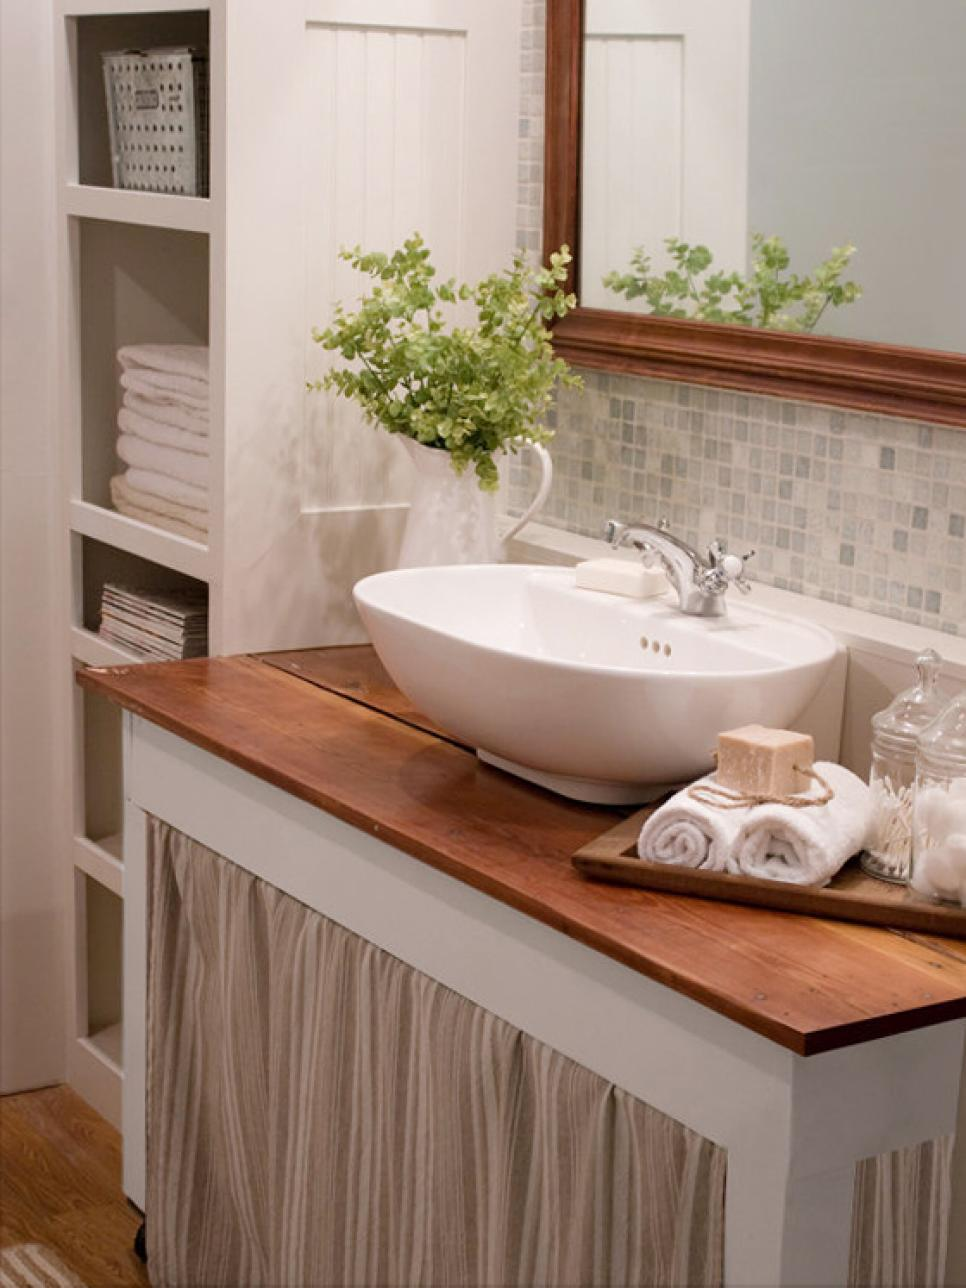 Pictures Of Bathrooms 20 Small Bathroom Design Ideas  Hgtv